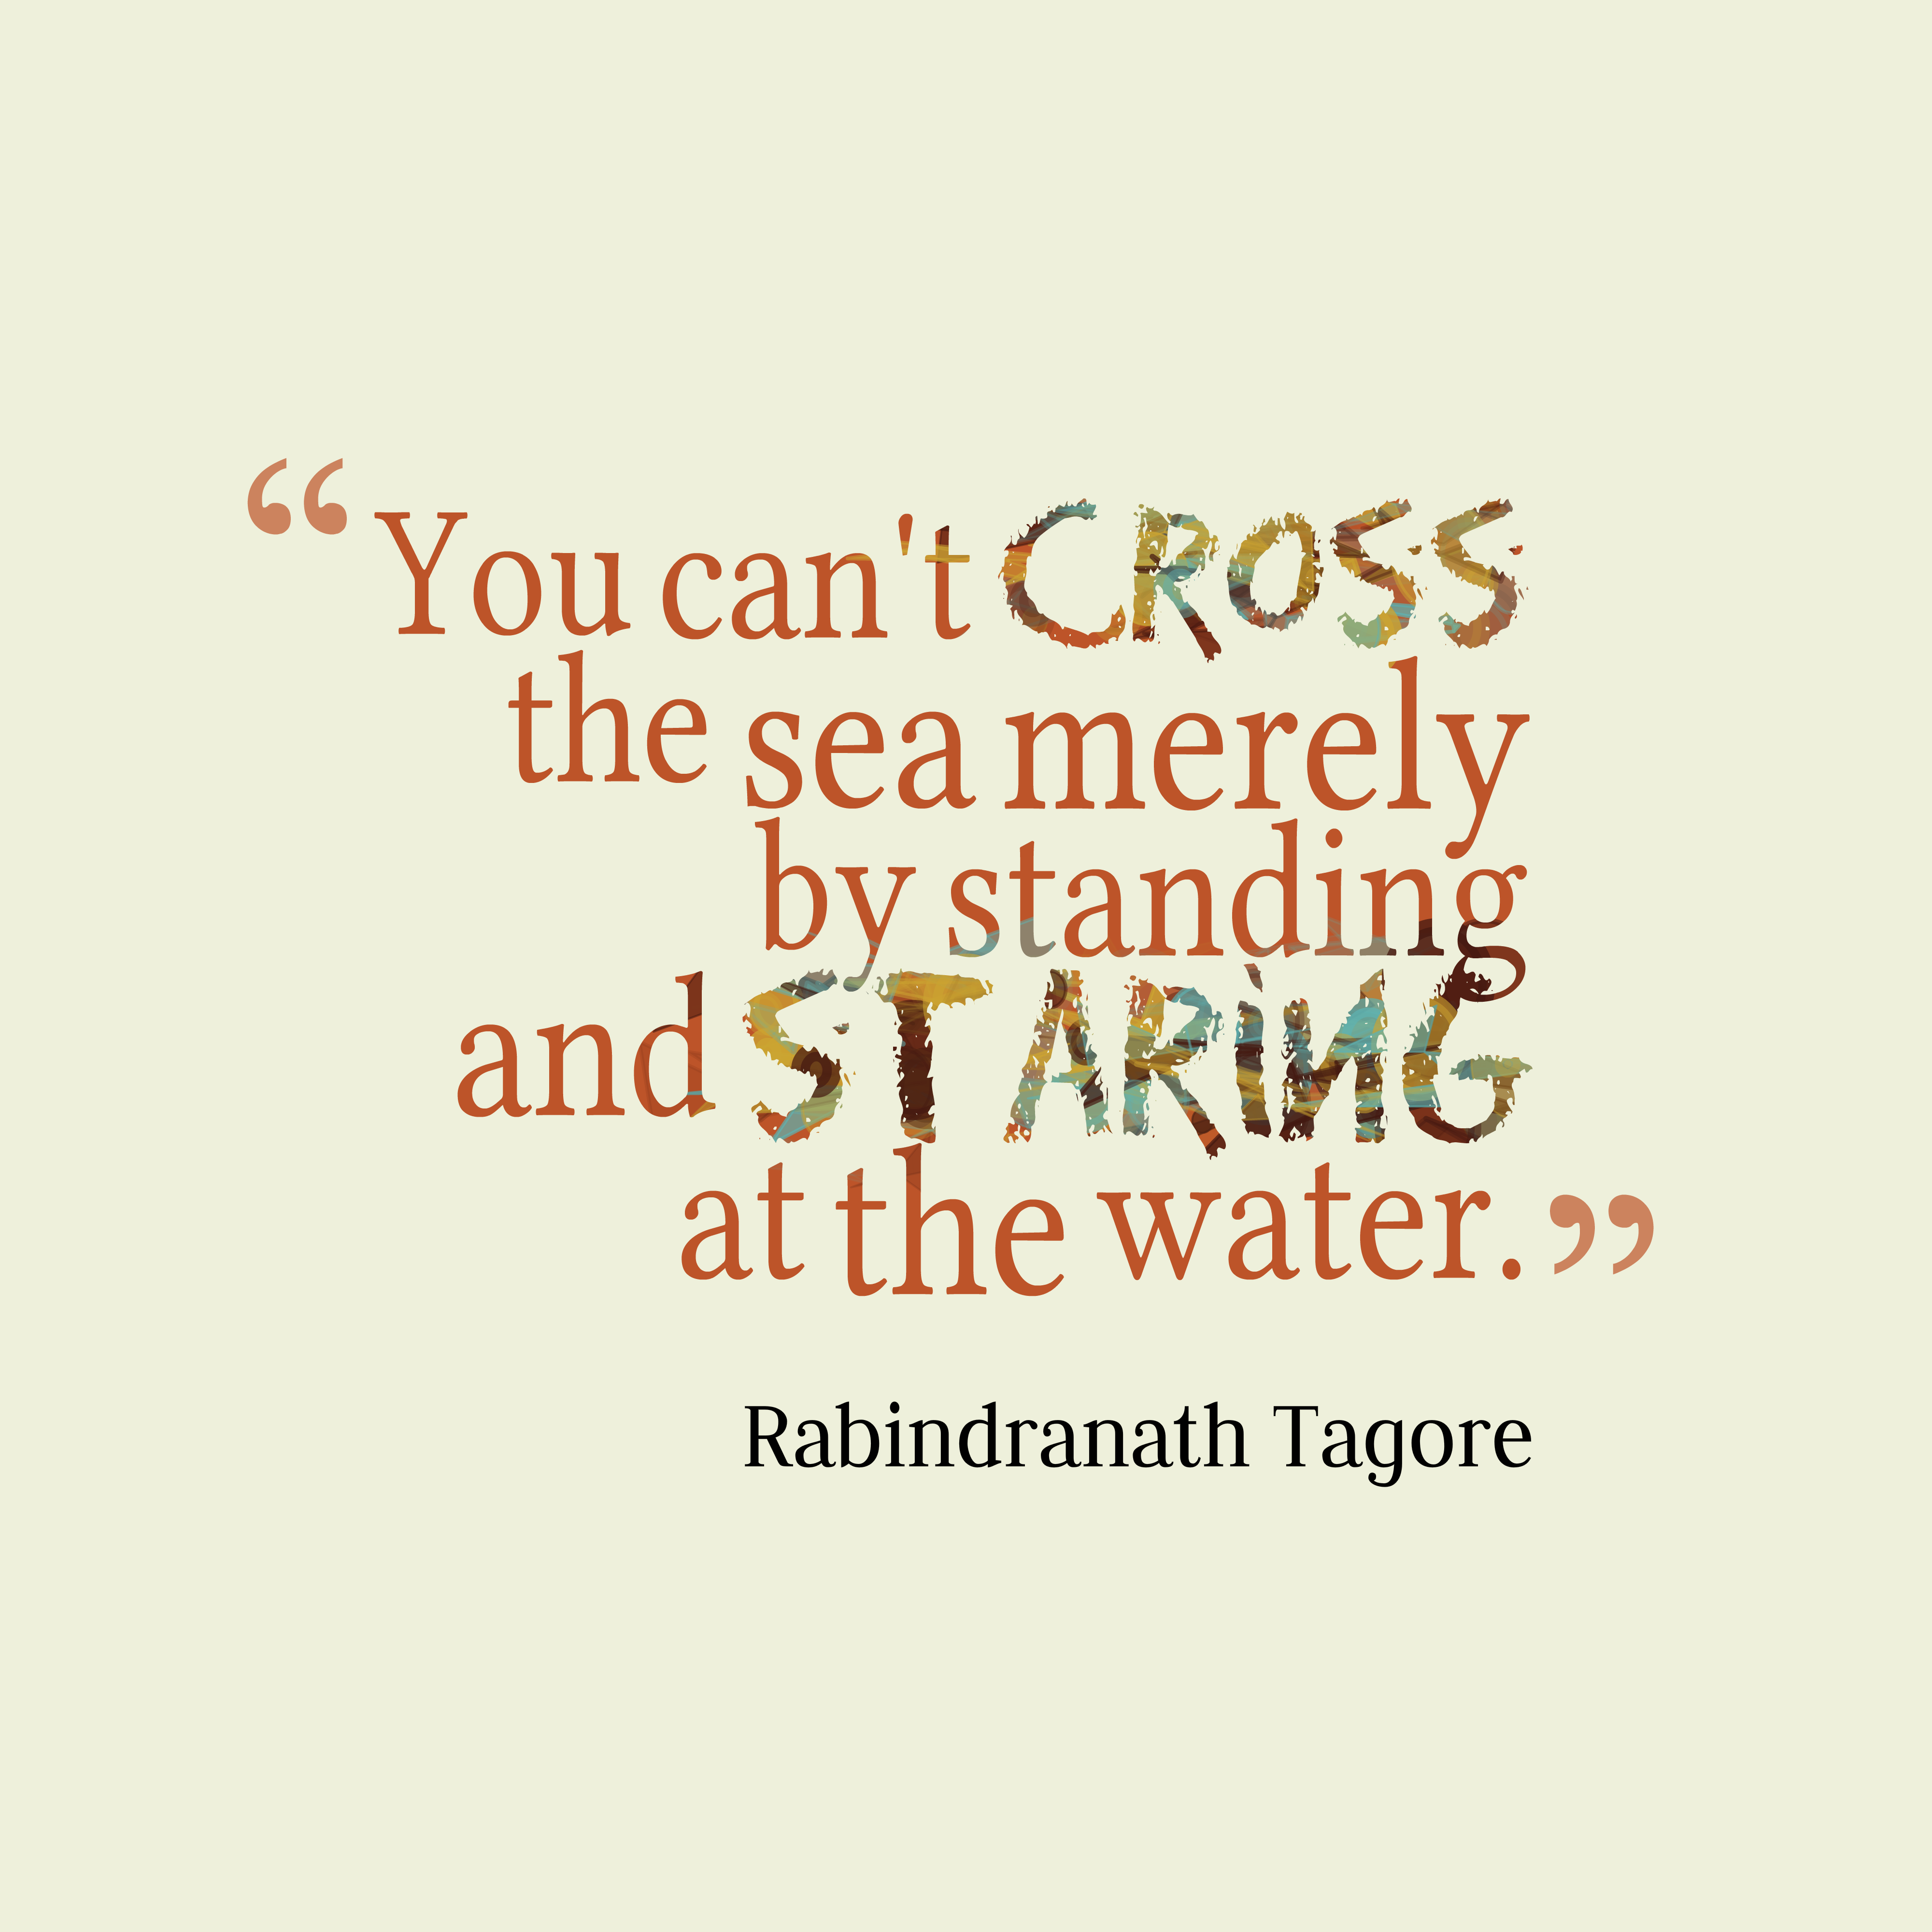 Quotes image of You can't cross the sea merely by standing and staring at the water.